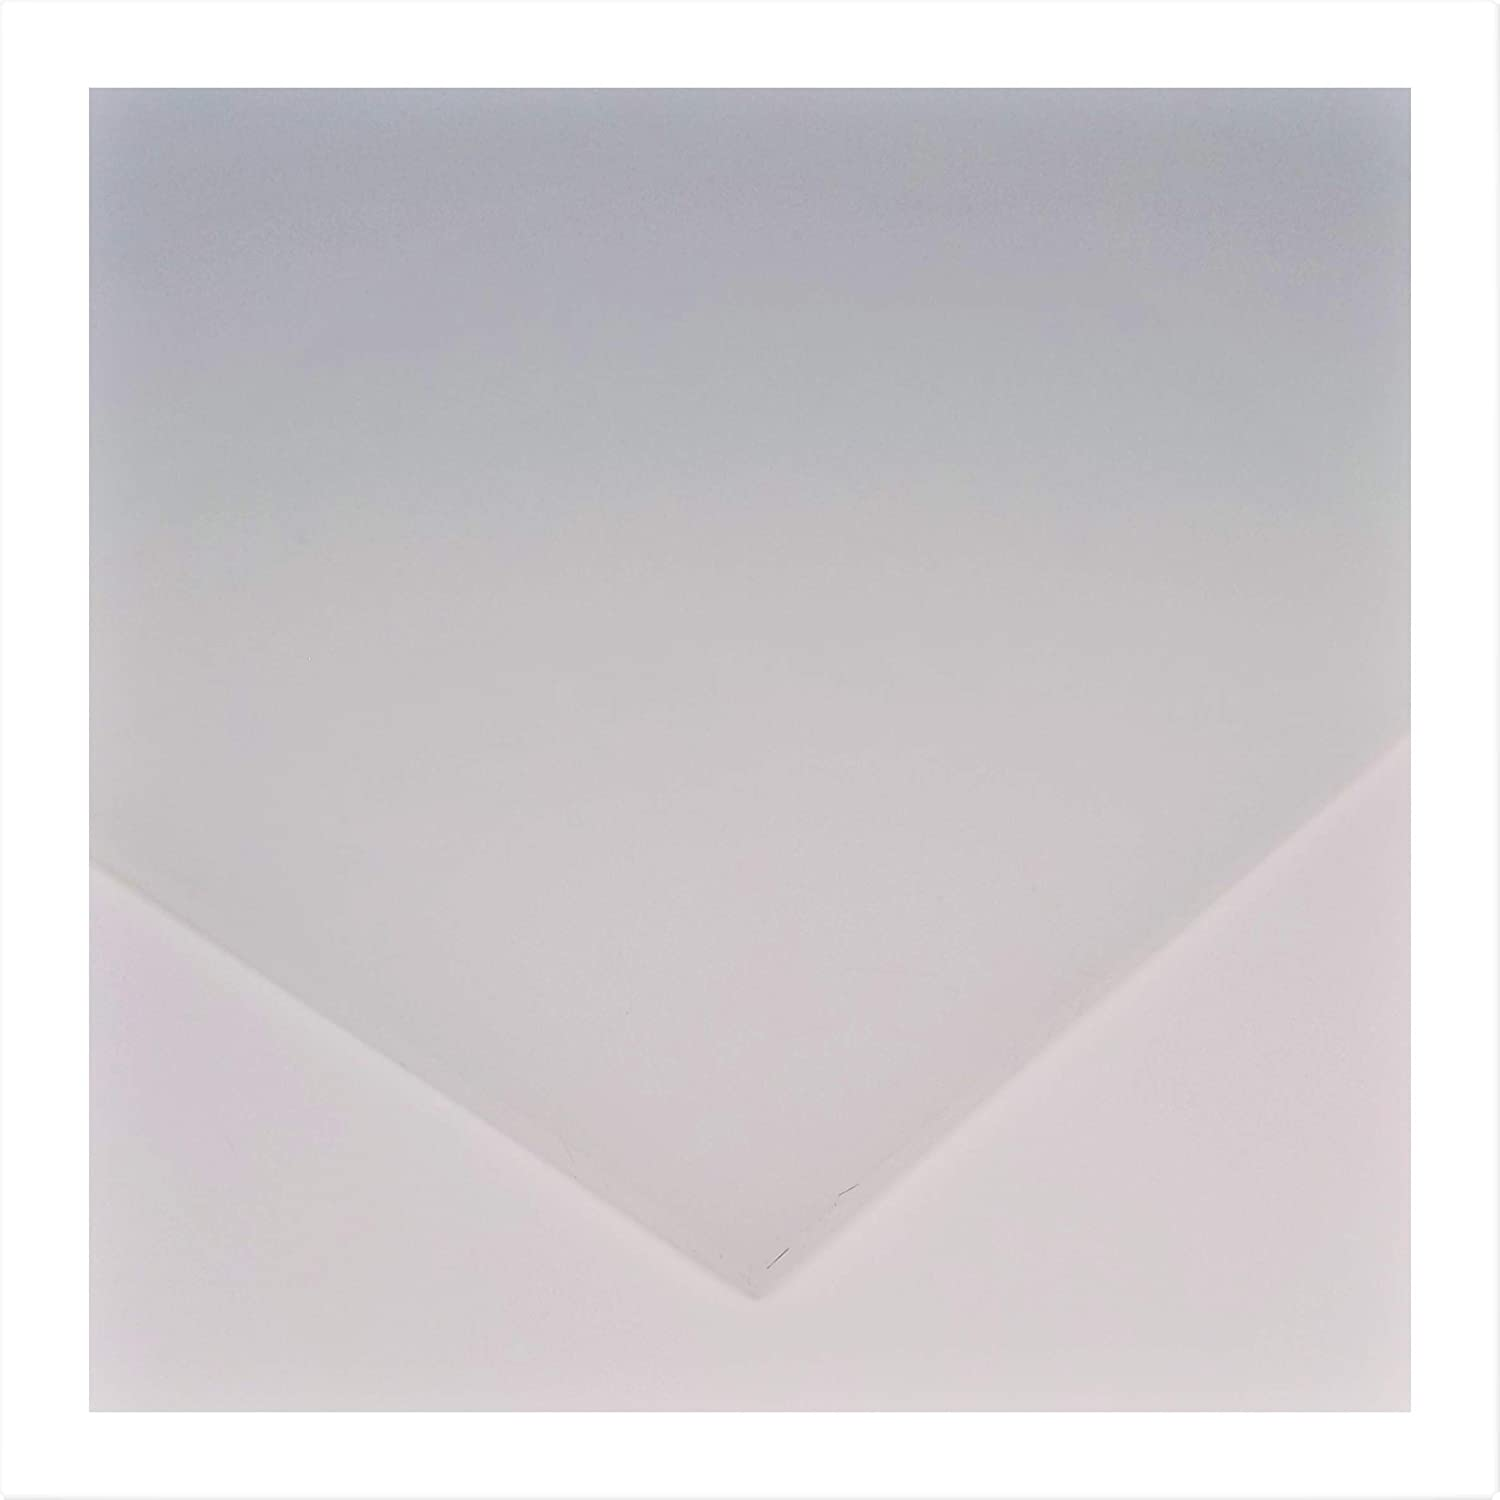 """Silicone Rubber Sheet, 50A Durometer, Translucent, 1/16 inch Thick, 9"""" x 12"""" (1.6mm x 230mm x 305mm)"""